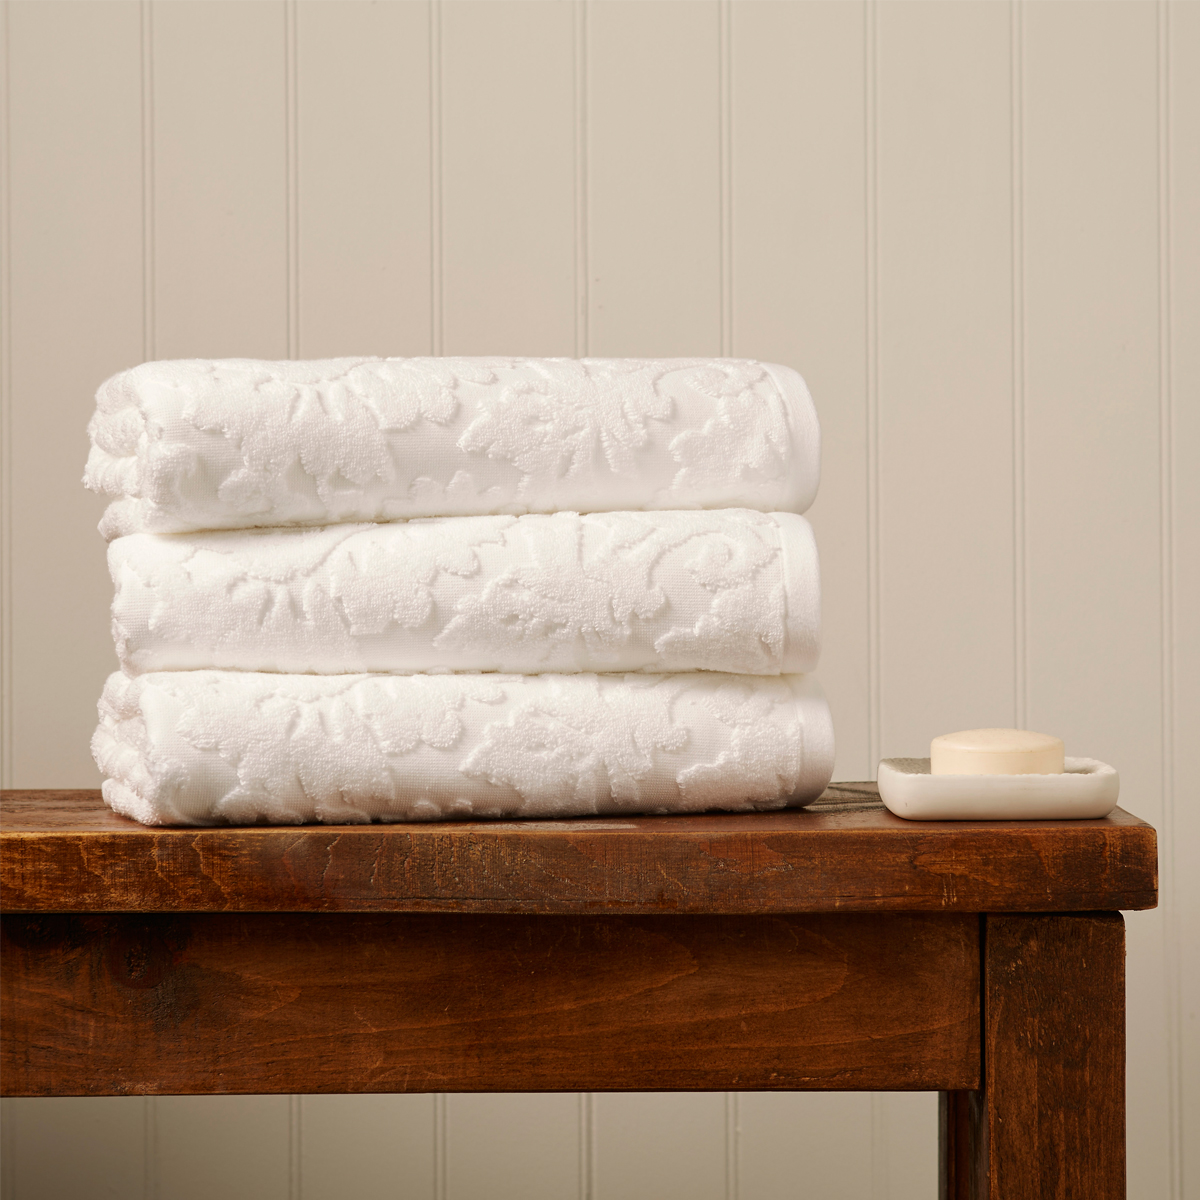 Christy Palais Towels White - Christy